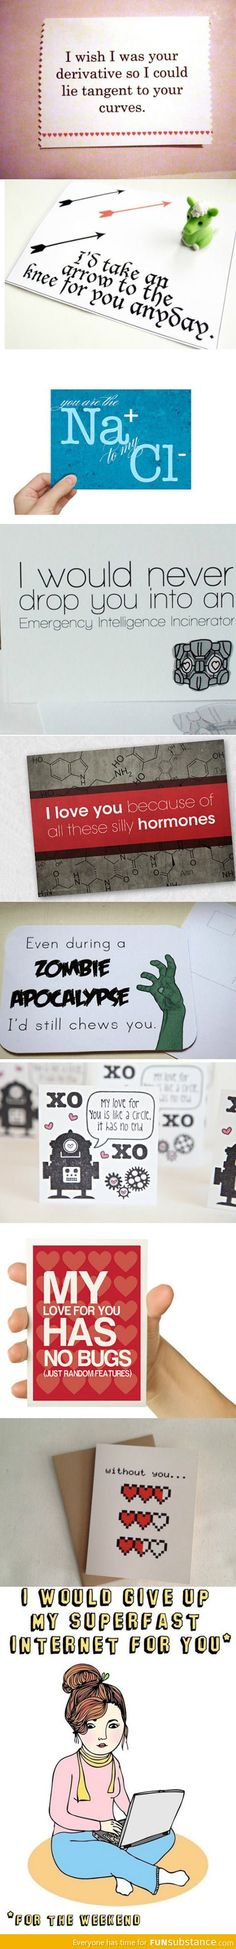 10 Geeky Valentine's Day Cards